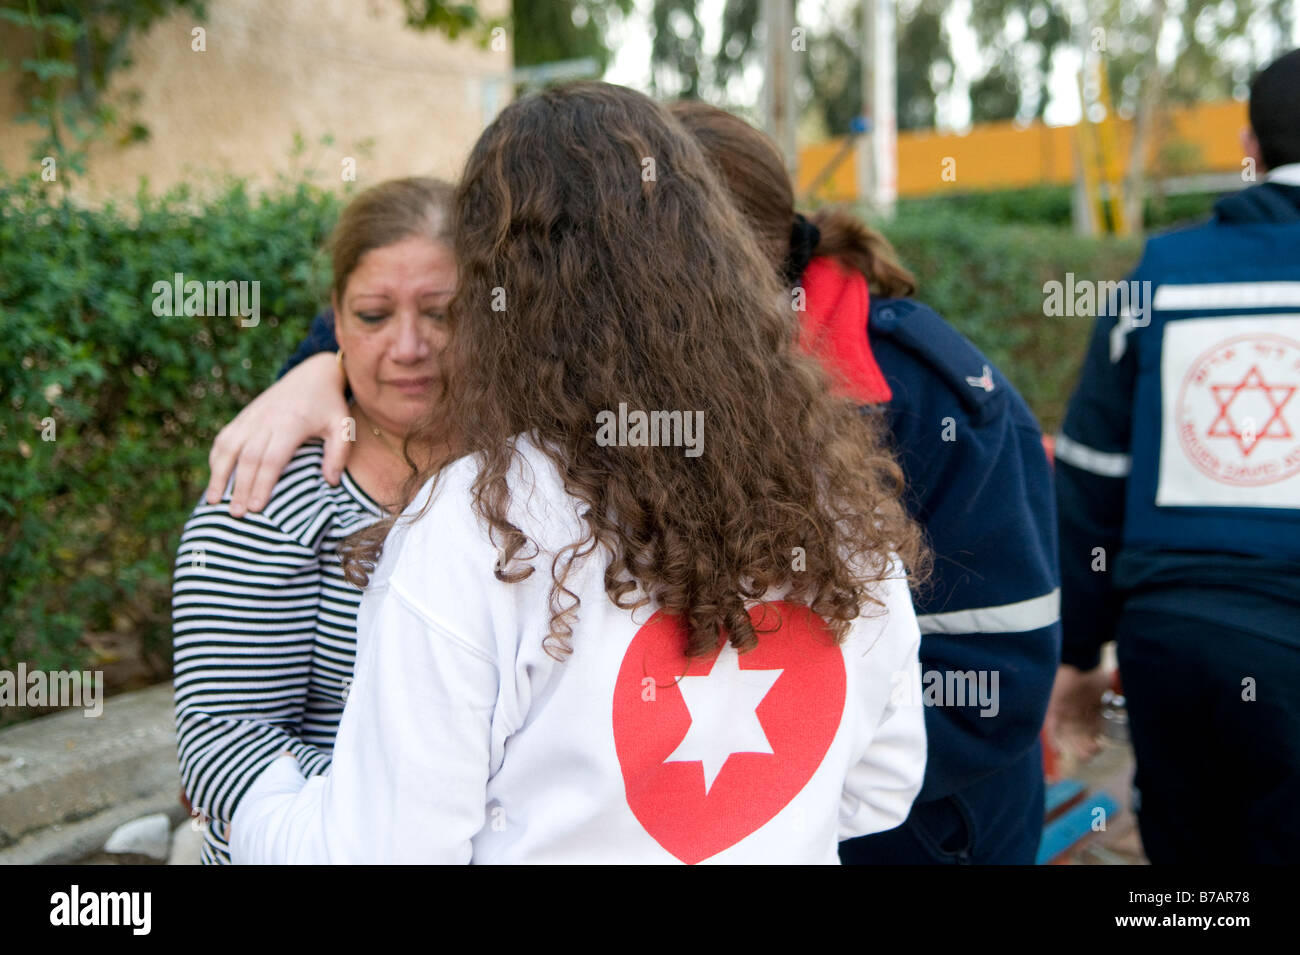 An Israeli woman is evacuated in shock from the scene of a Palestinian Qassam rocket attack in the town of Sderot, - Stock Image